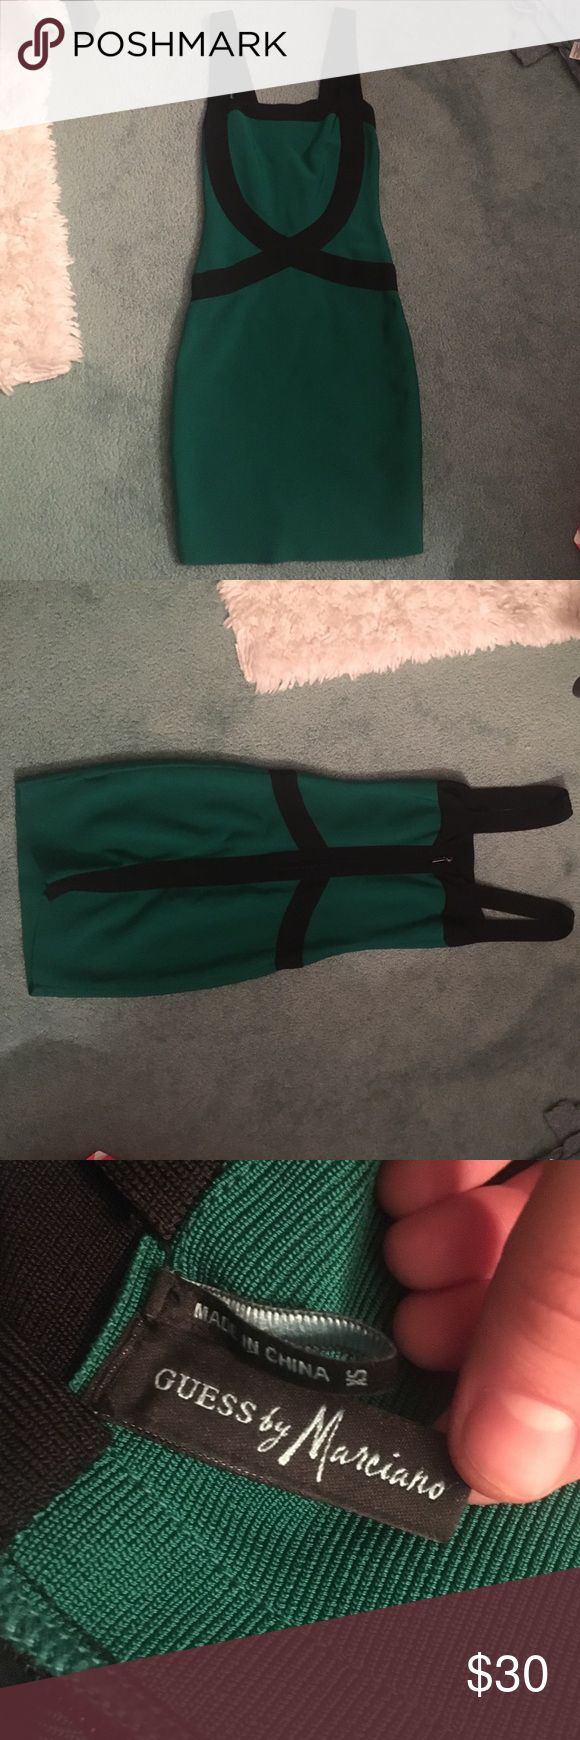 Green Guess dress Green knee length dress Guess by Marciano xs, tight fitting Guess by Marciano Dresses